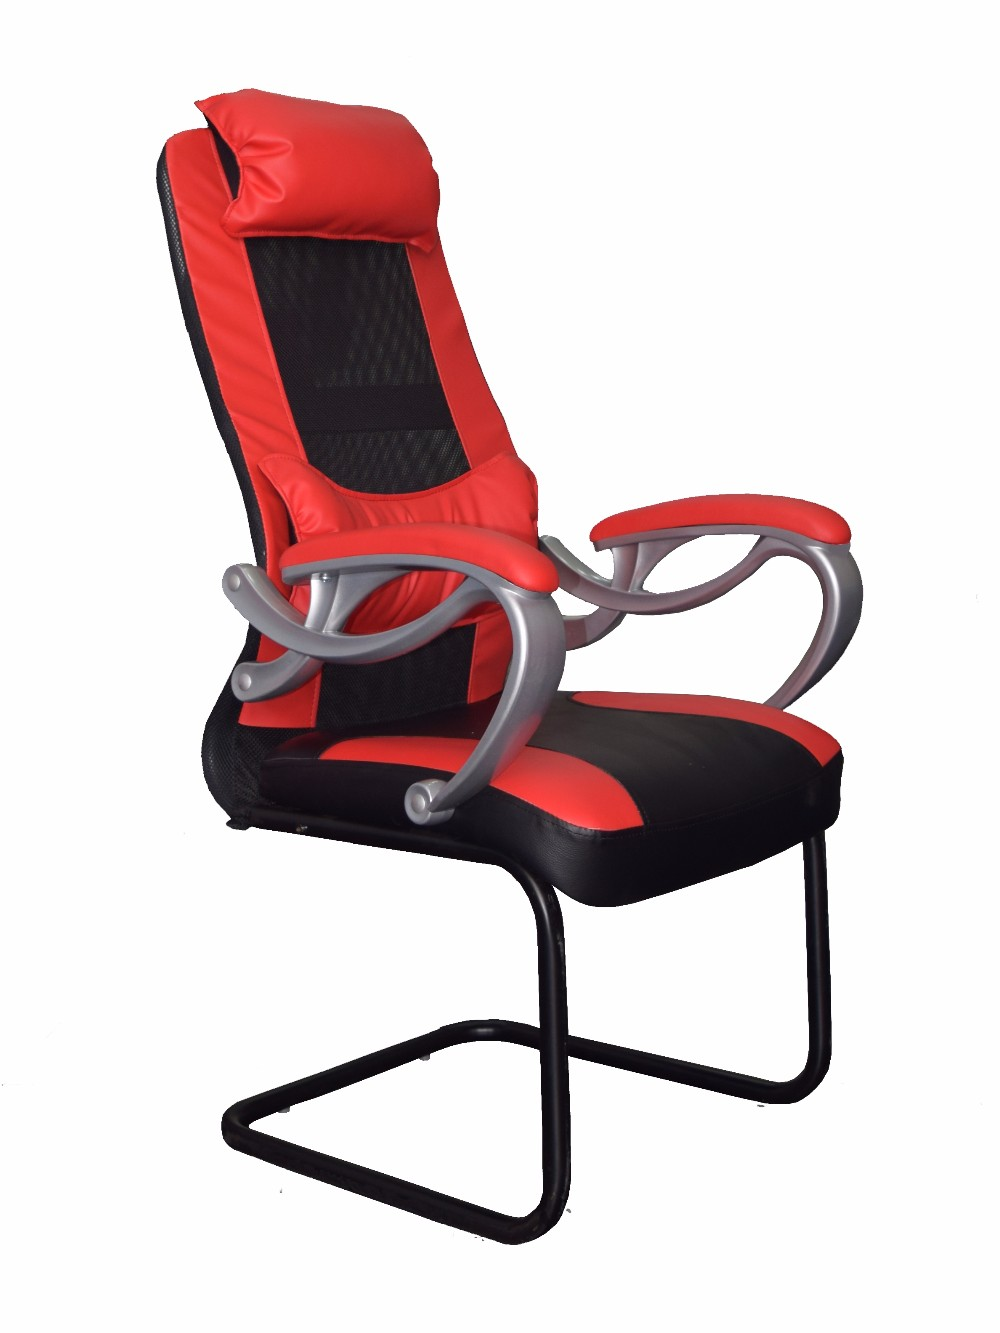 Modern Design Metal Frame Pu Leather Gaming Chair Cheap Price Buy Conference ChairGaming